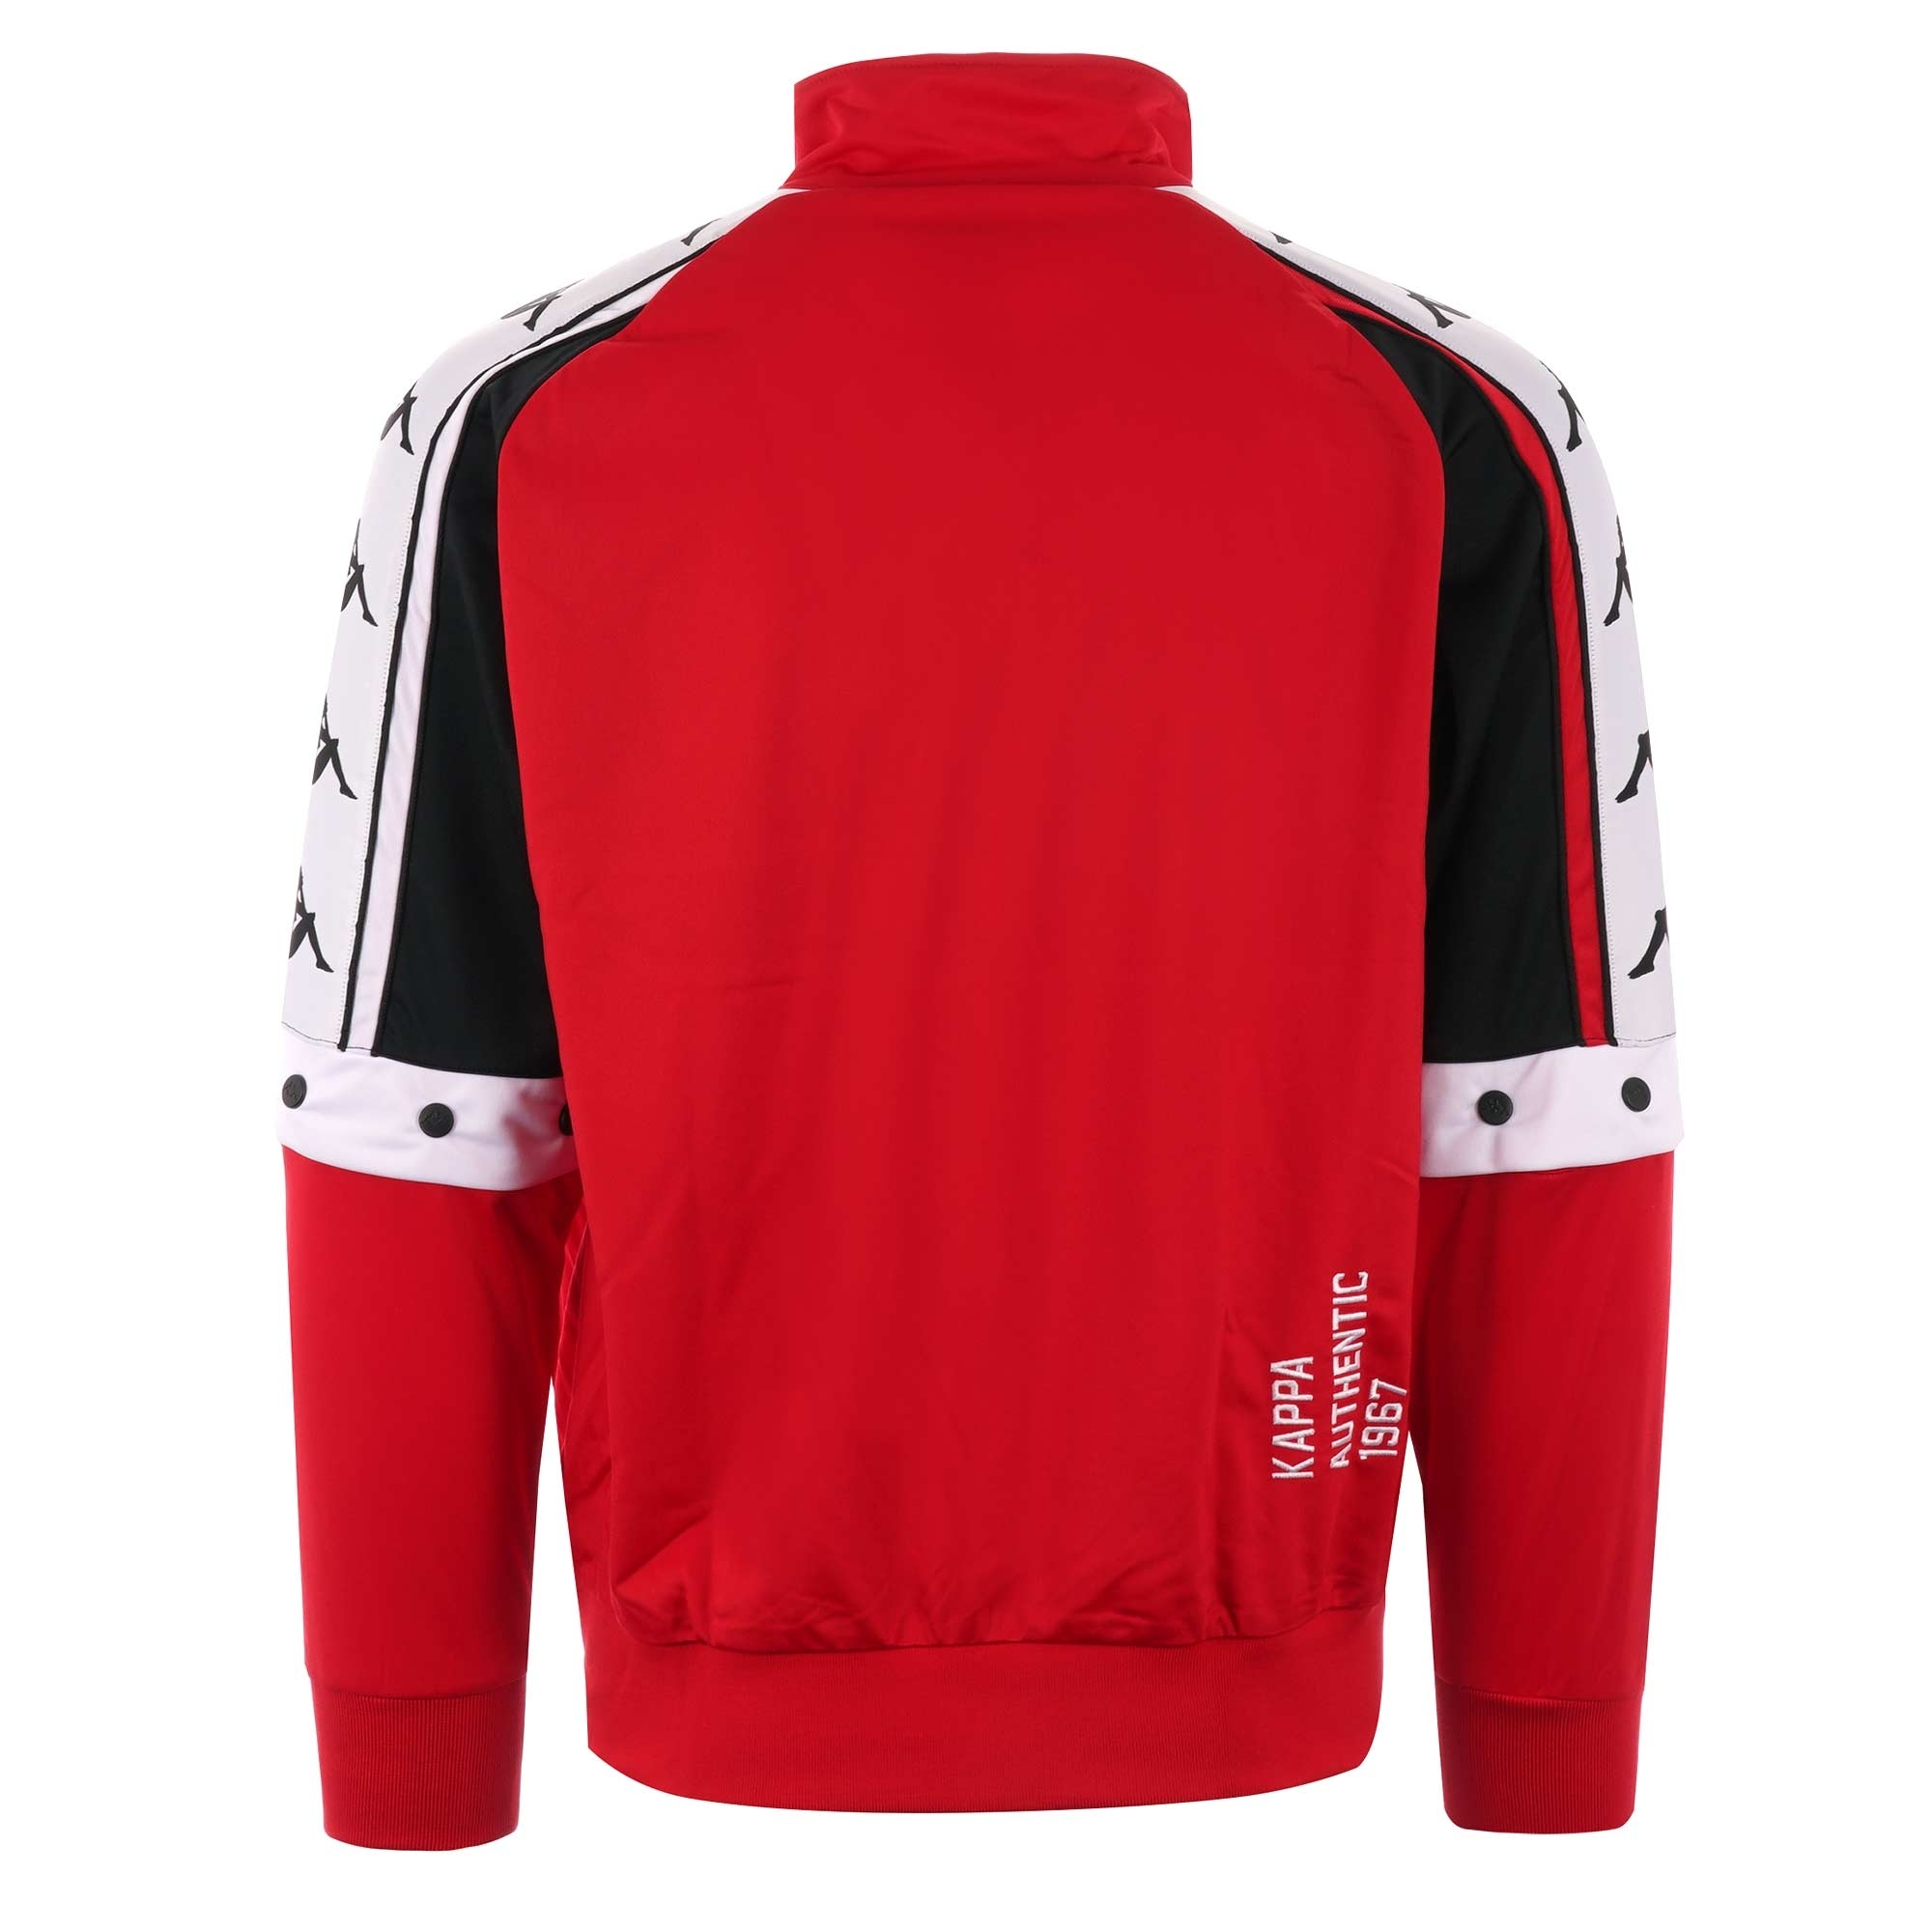 2f21d03410 Kappa Bafer Authentic Jacket | Red, Black & White | US Stockists